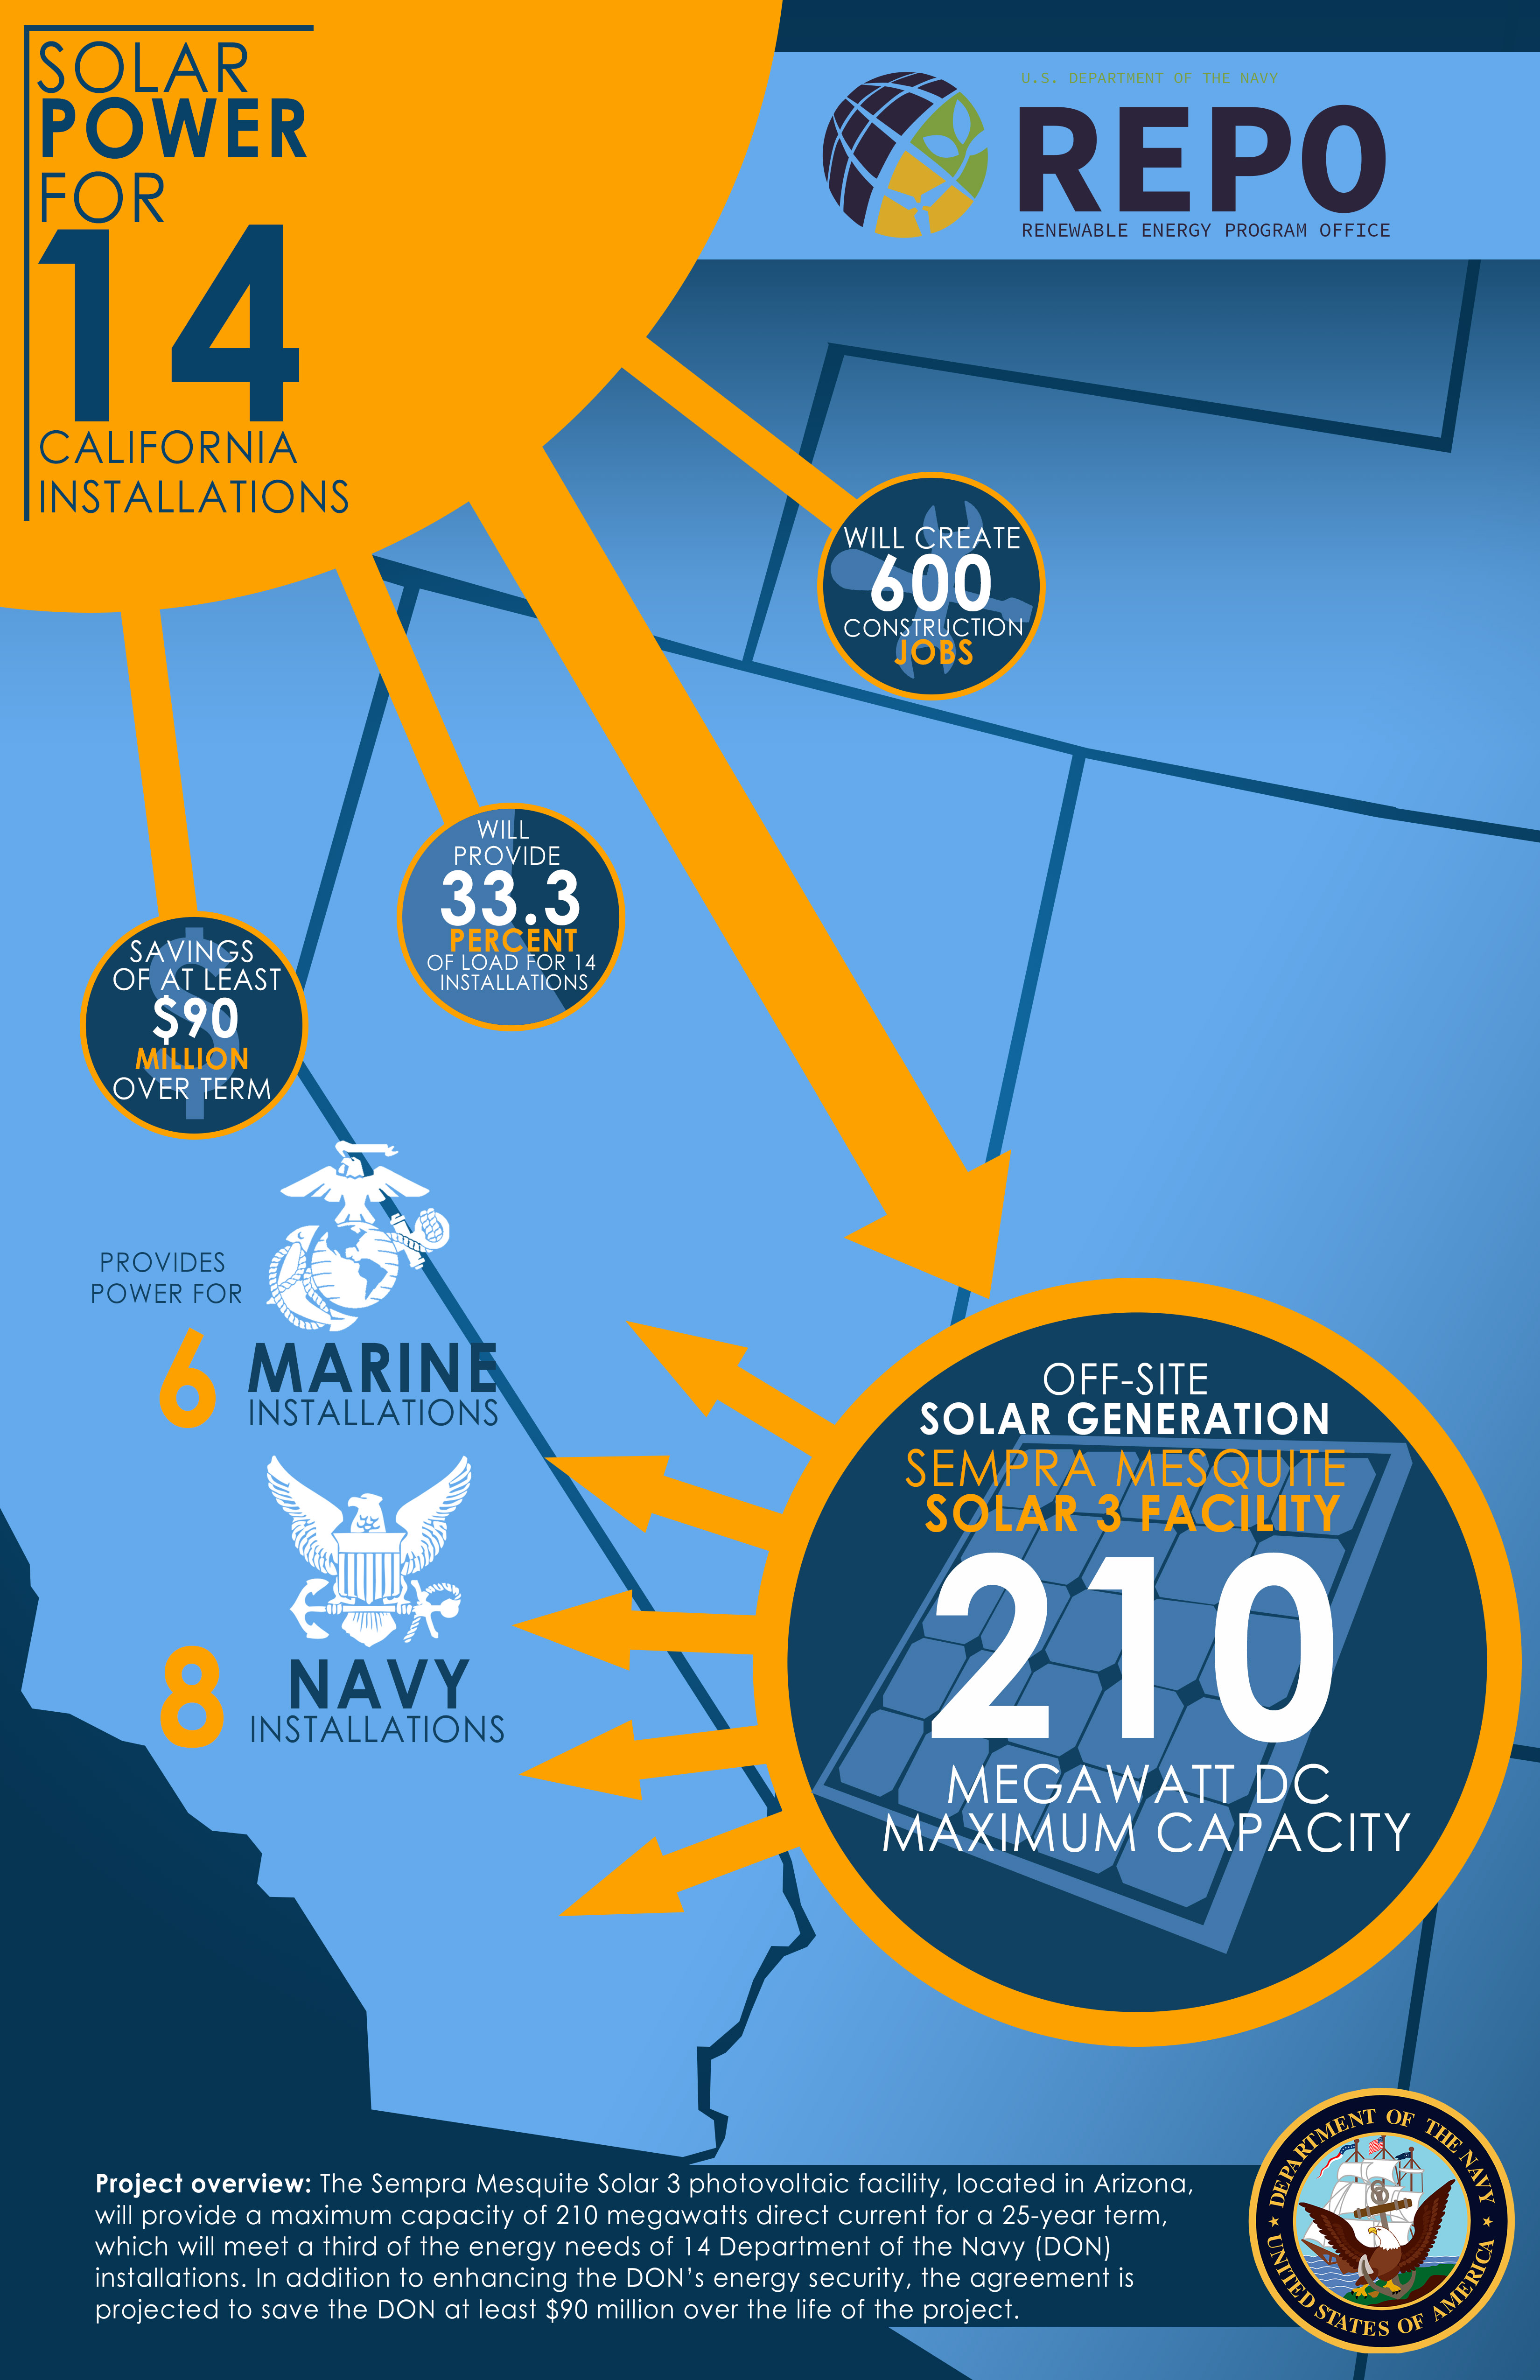 A 2015 infographic depicting how the Sempra Mesquite Solar 3 photovoltaic facility will provide maximum capacity of 210 megawatts of direct current to meet a third of the energy needs of 14 Department of the Navy installations. US Navy Image